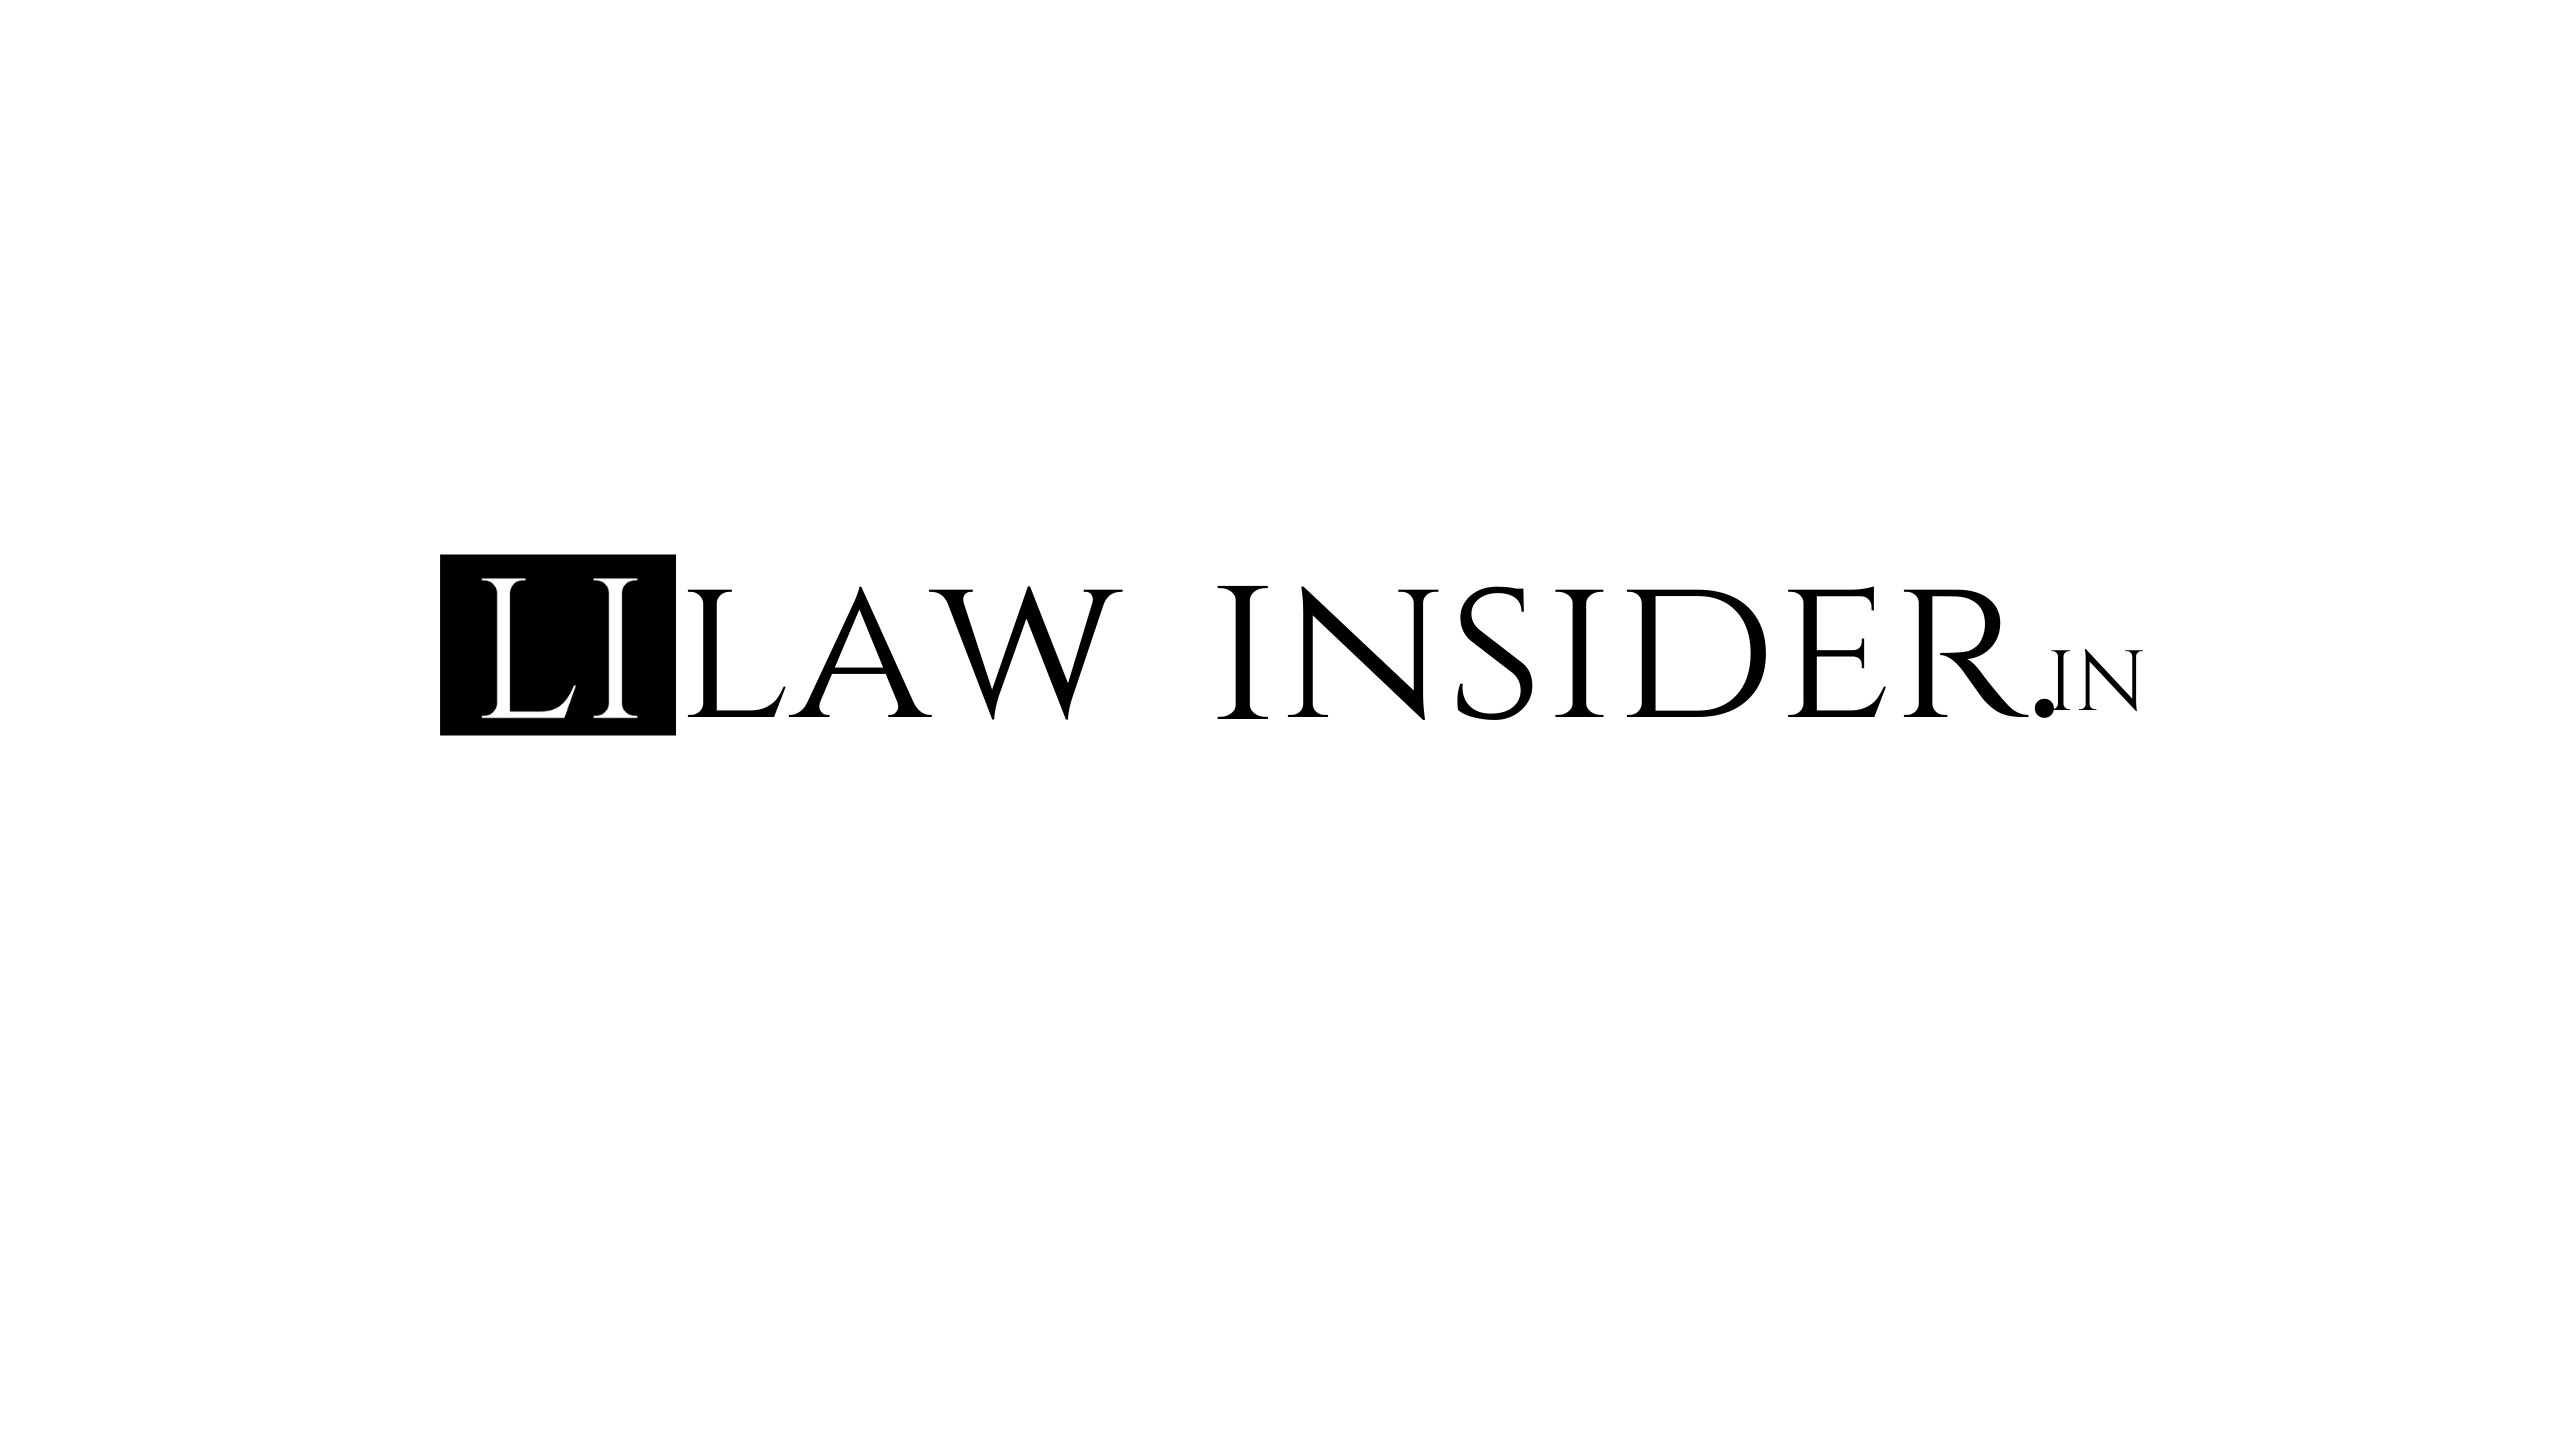 Law Insider Network